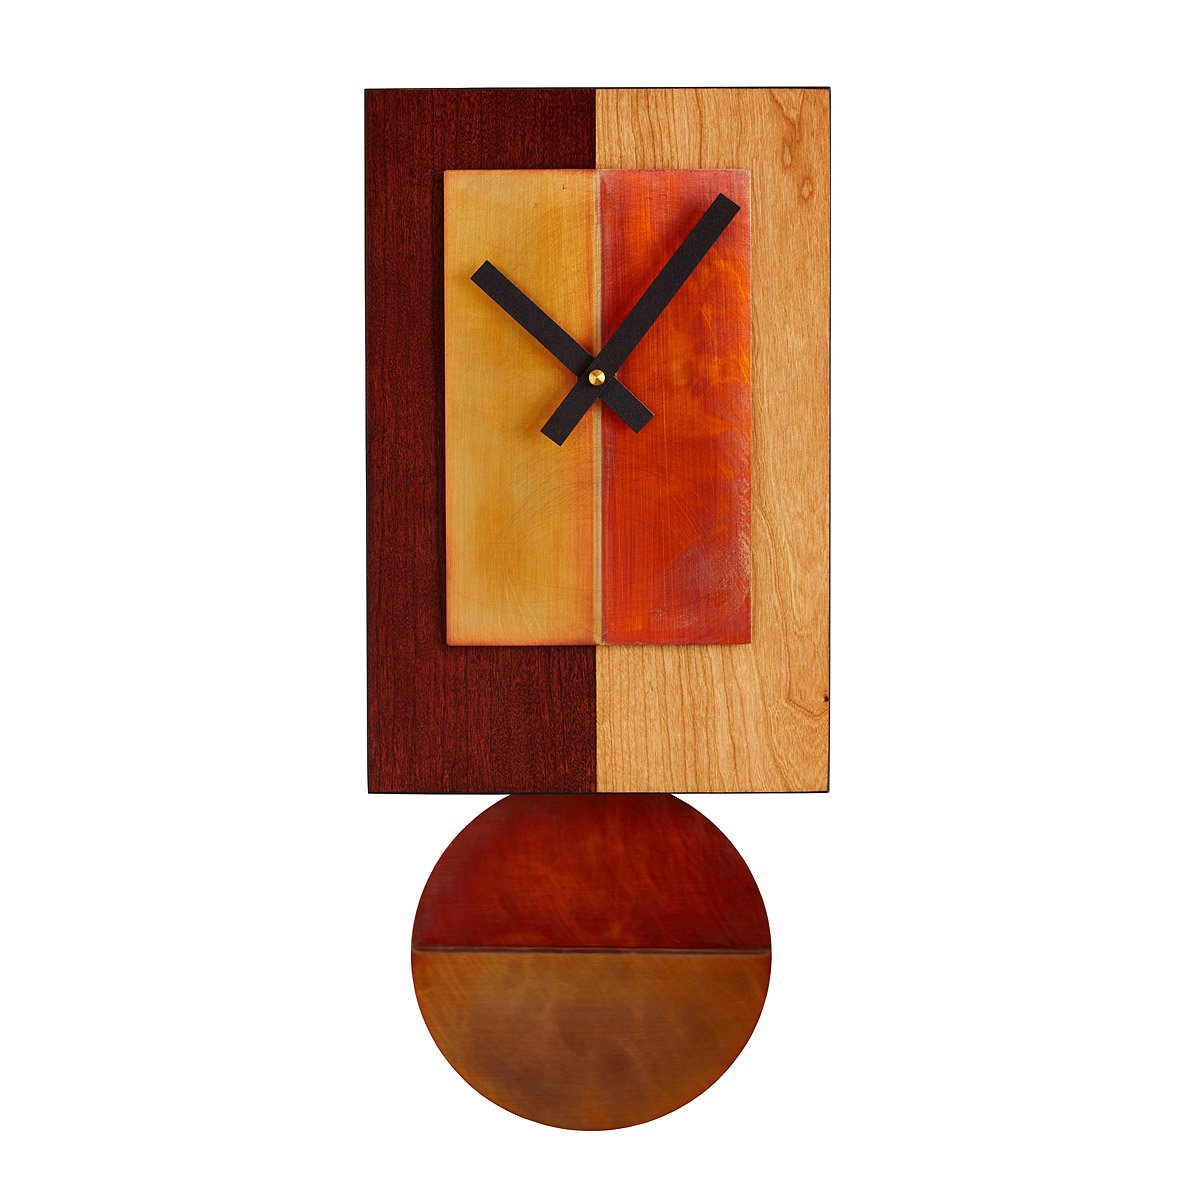 Unusual unique clocks recycled clocks cool clocks uncommongoods cherry pendulum clock amipublicfo Image collections